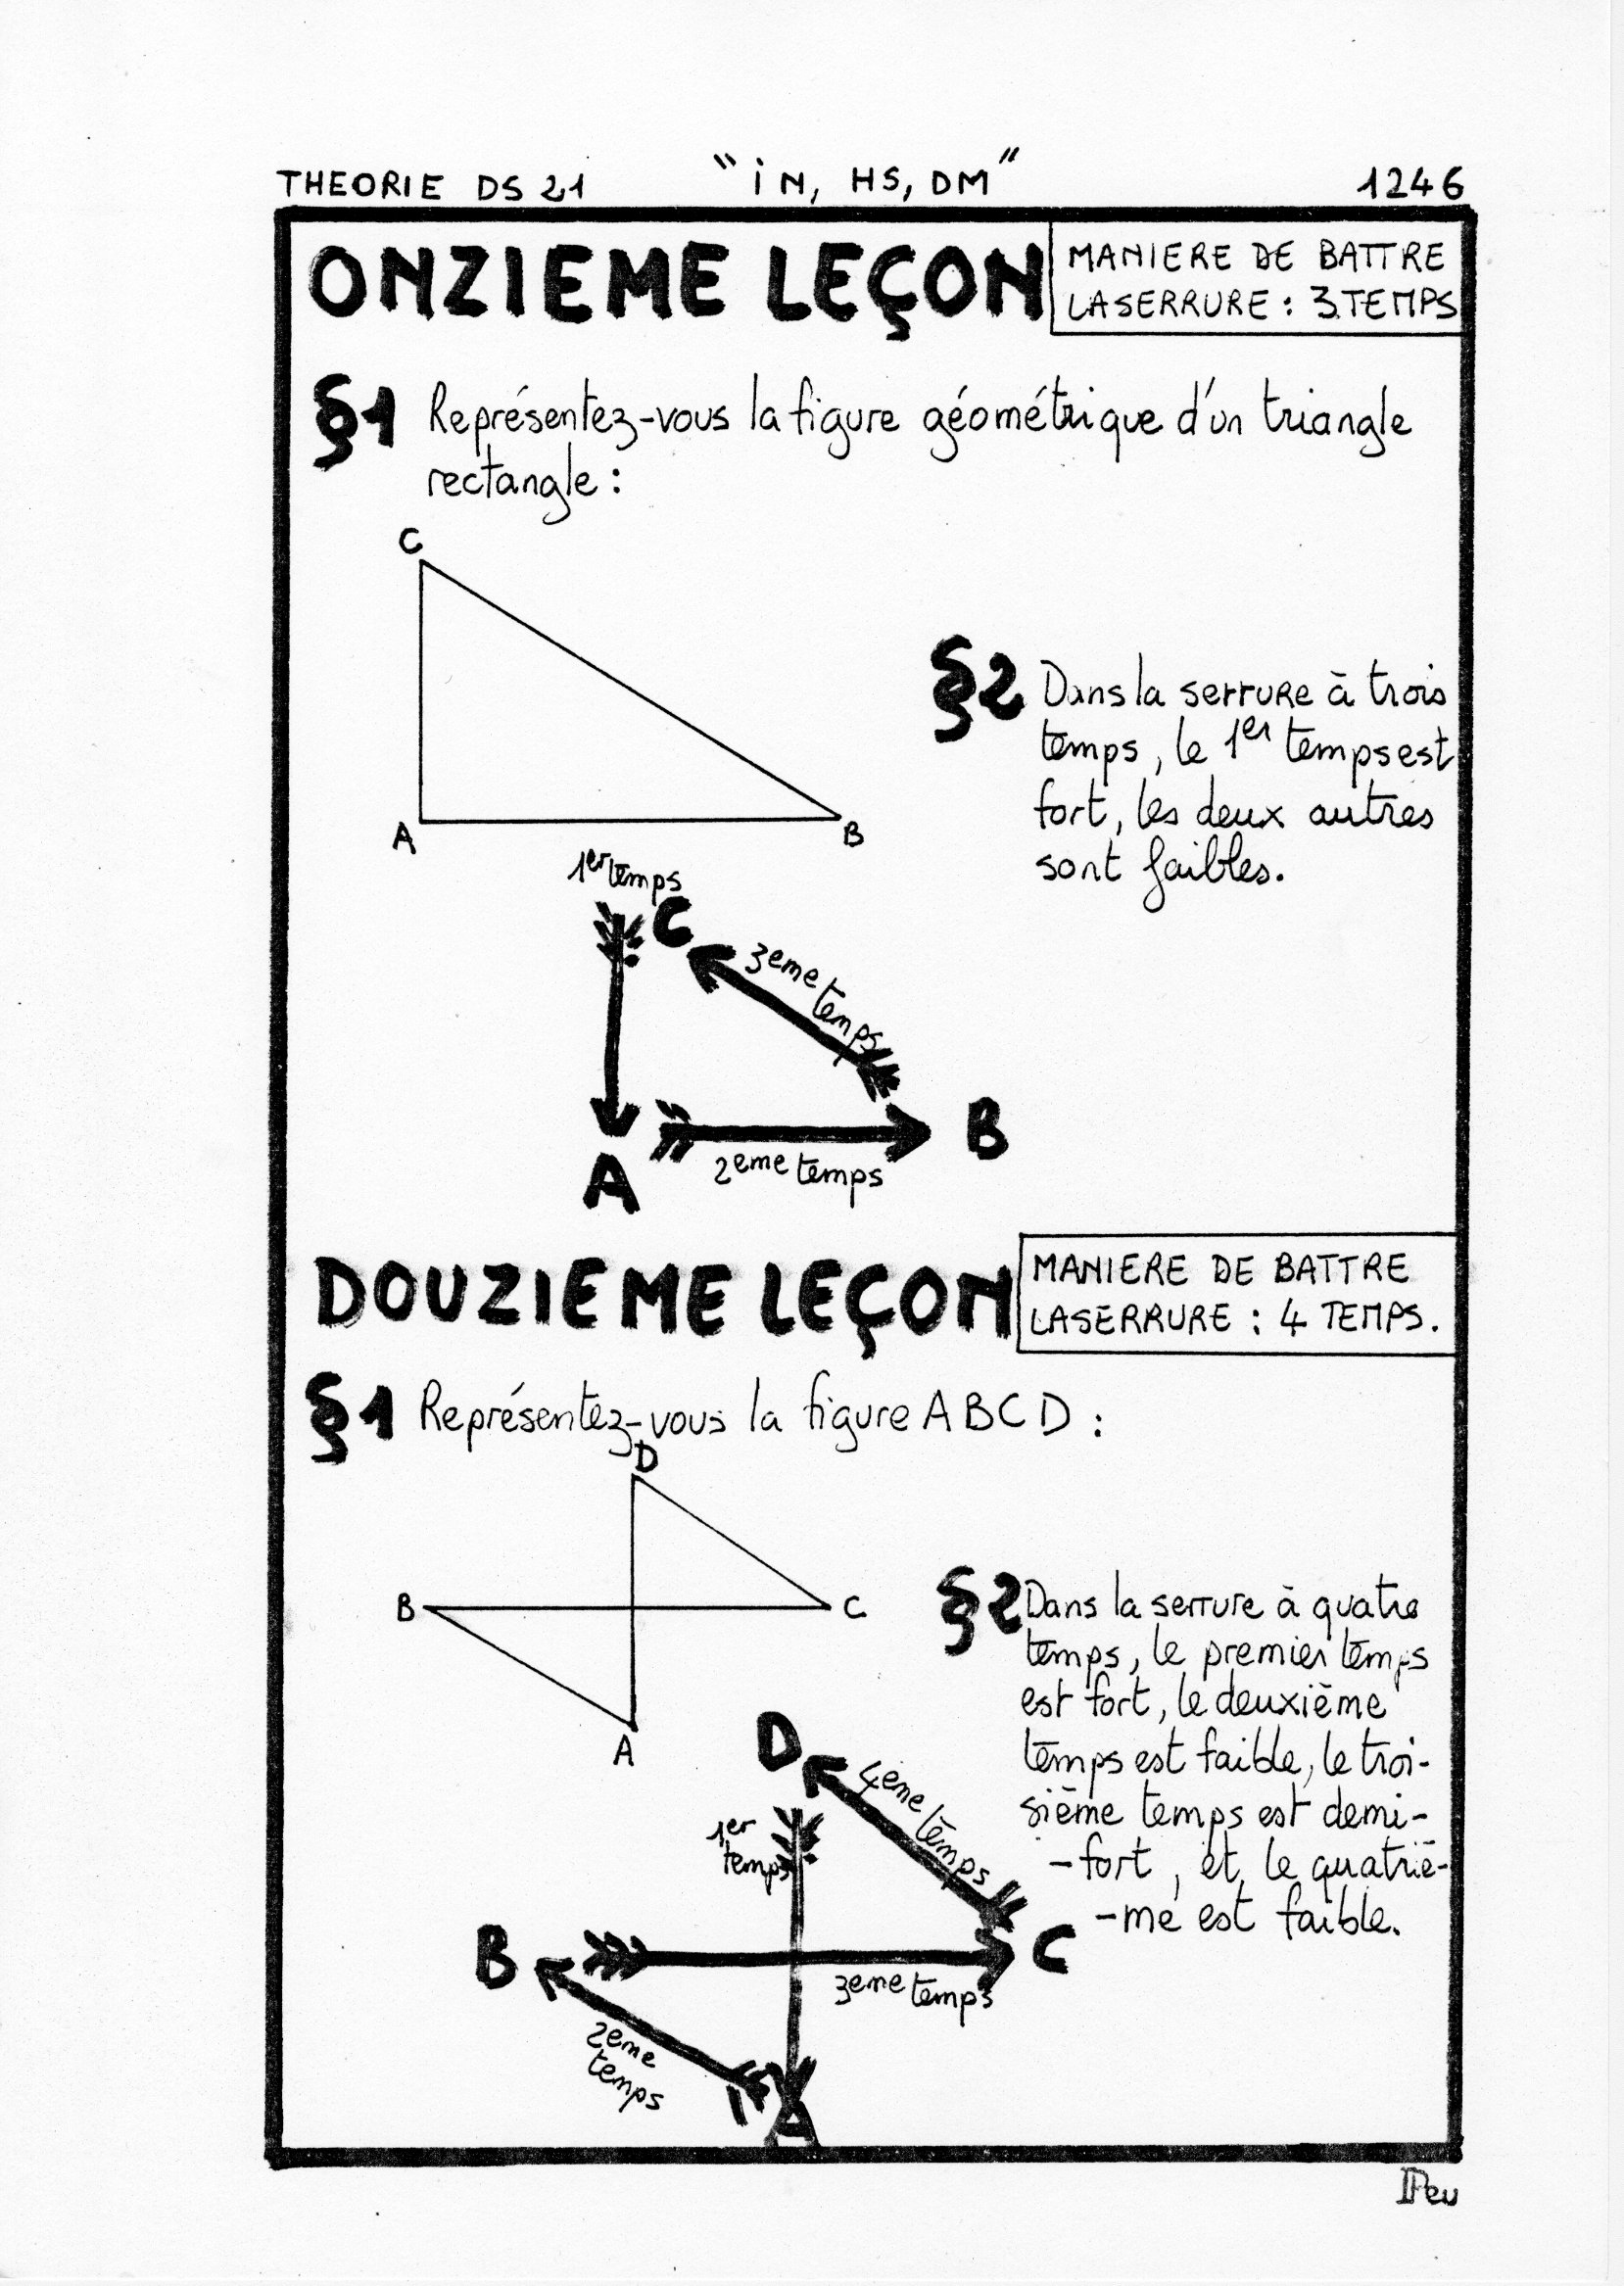 page 1246 Théorie D.S. 21 IN, HS, DM